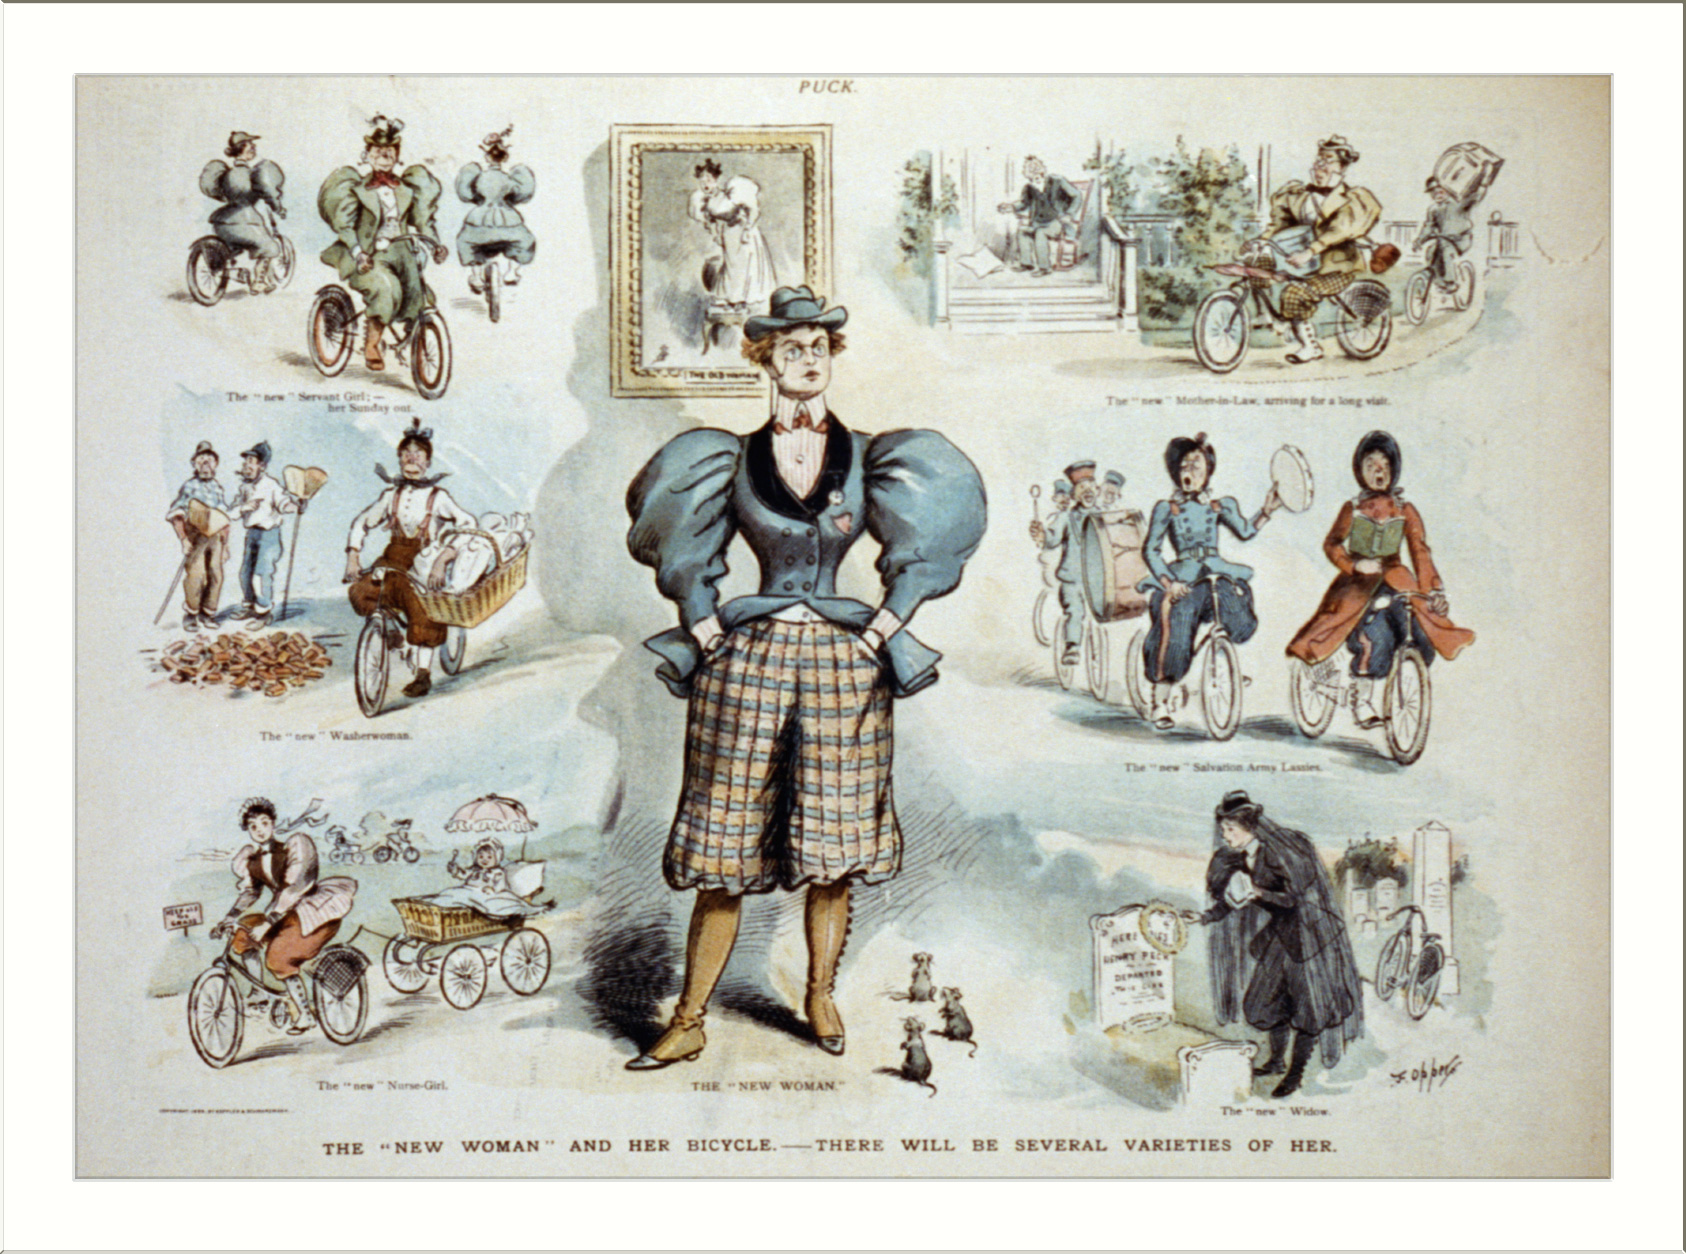 Bicycle-riding ladies and other threats to manly order